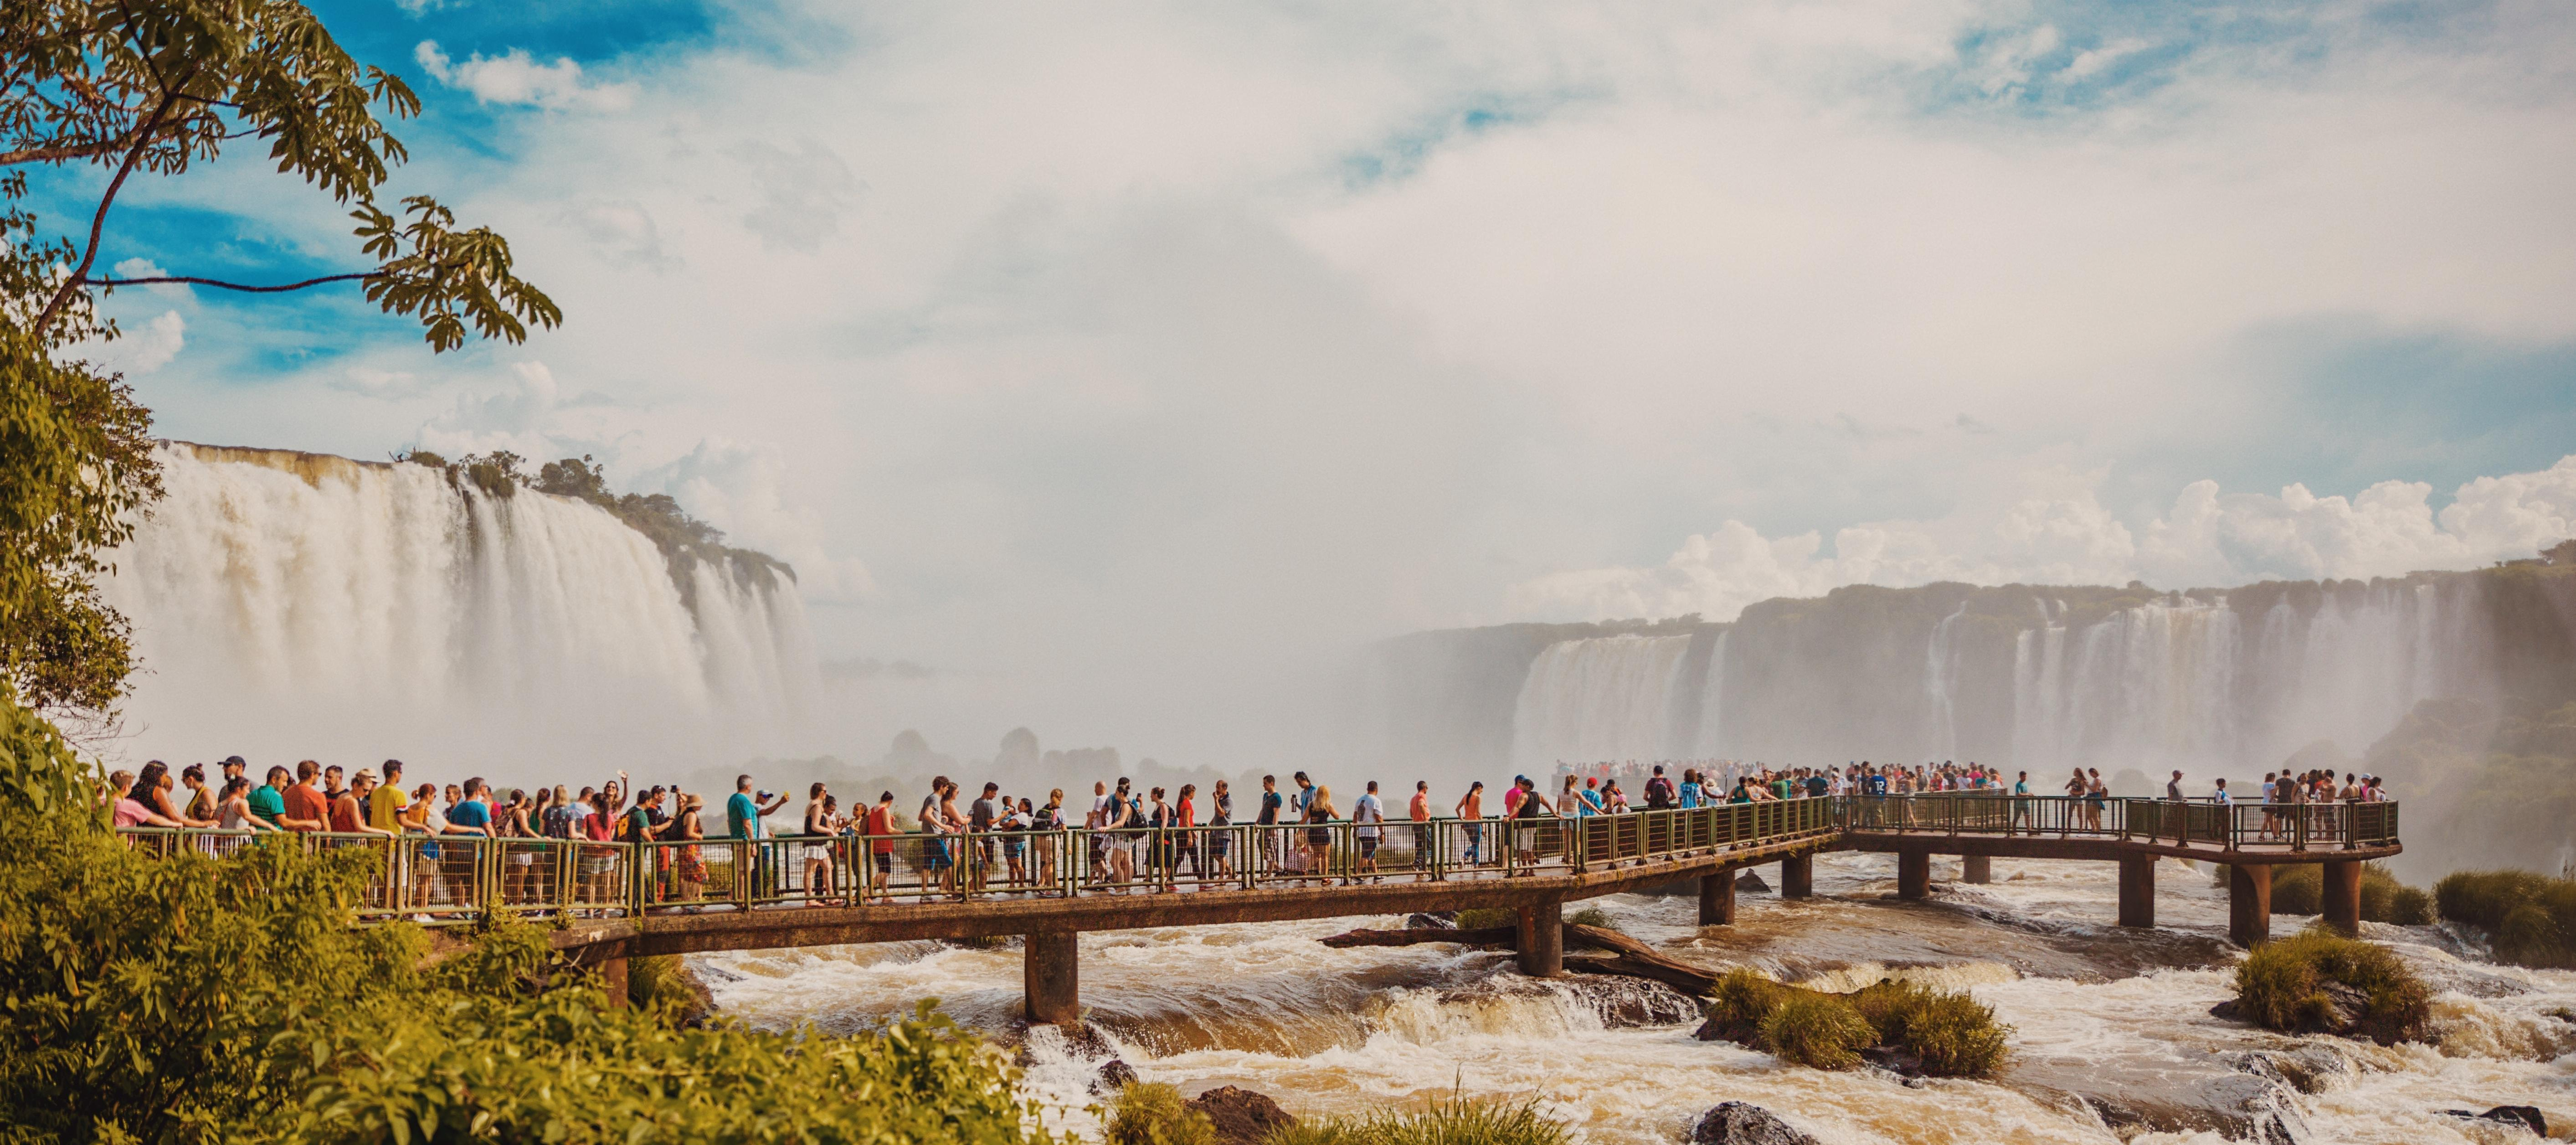 Crowd at waterfall